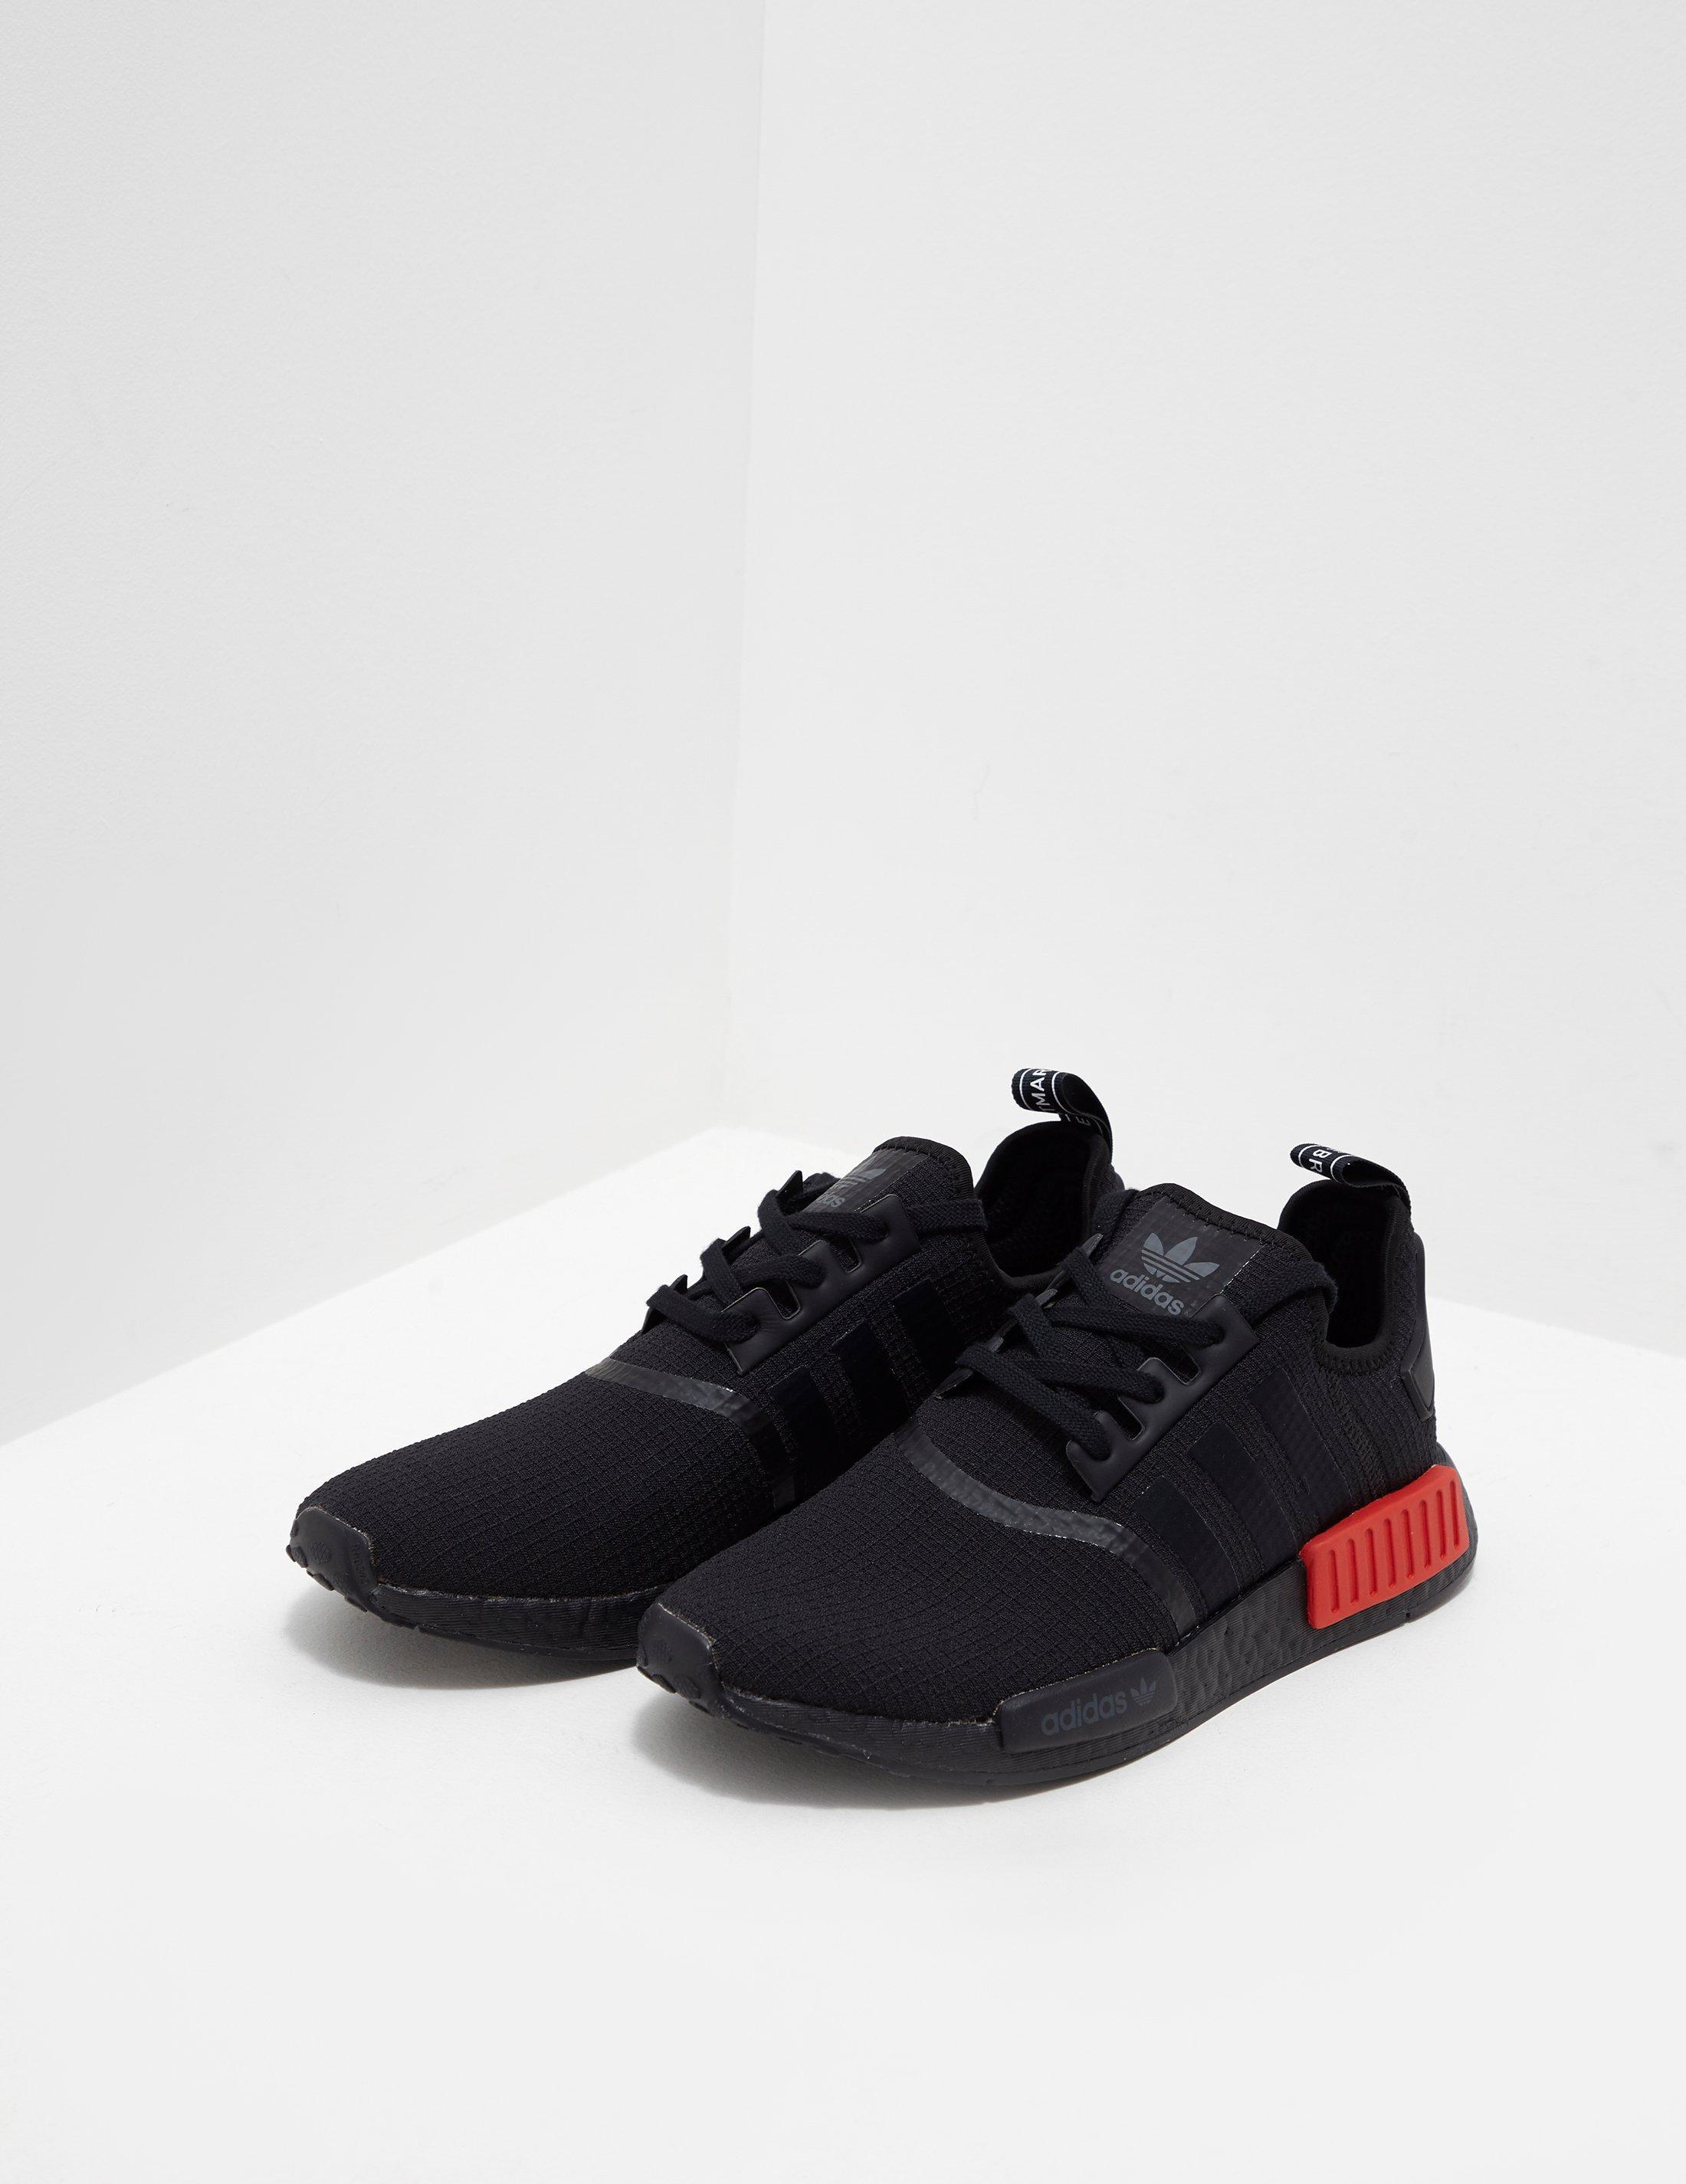 Nmd R1 Mens Black Great Quality Fast Delivery Special Offers